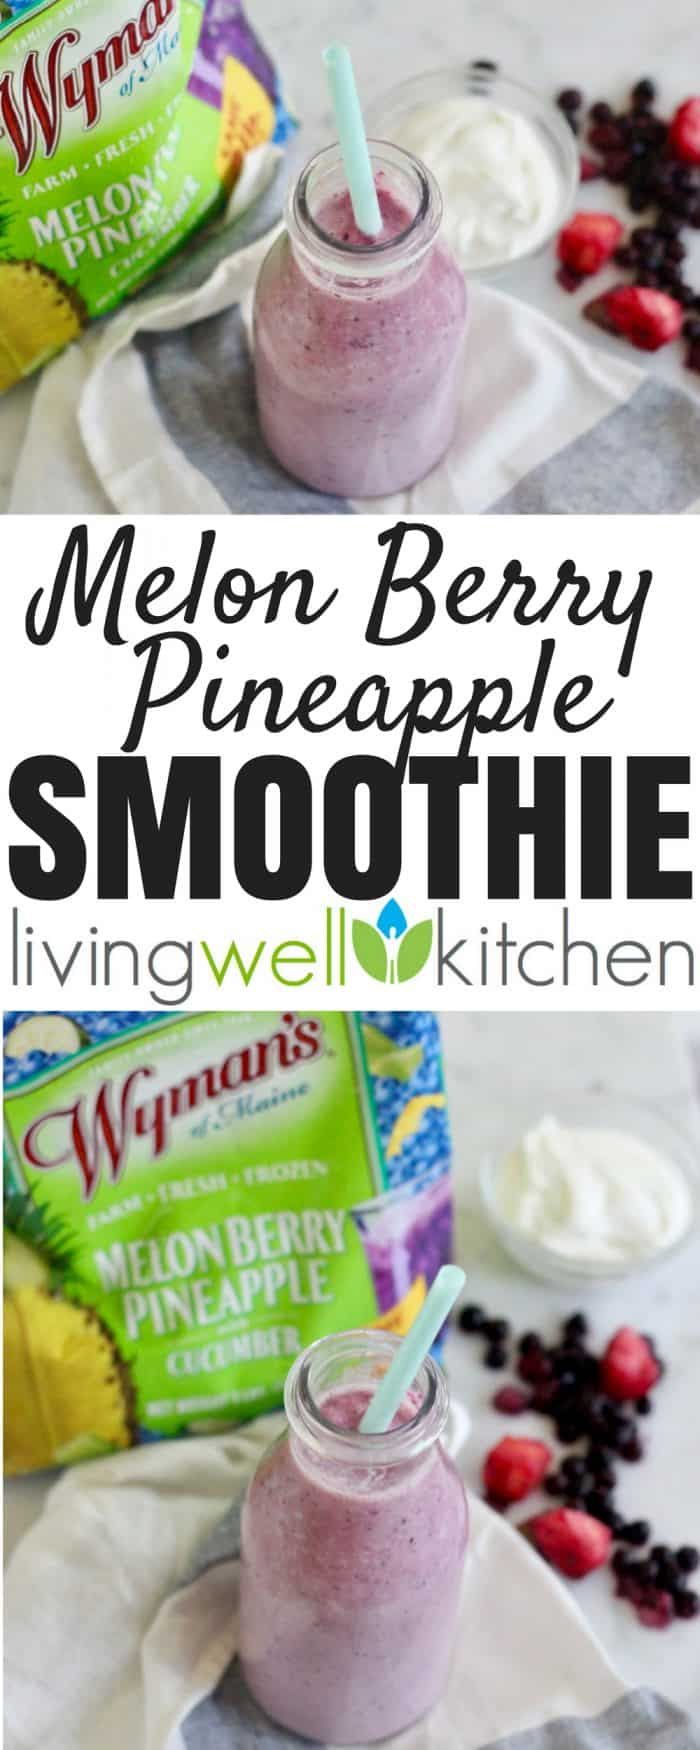 melon berry pineapple smoothie living well kitchen